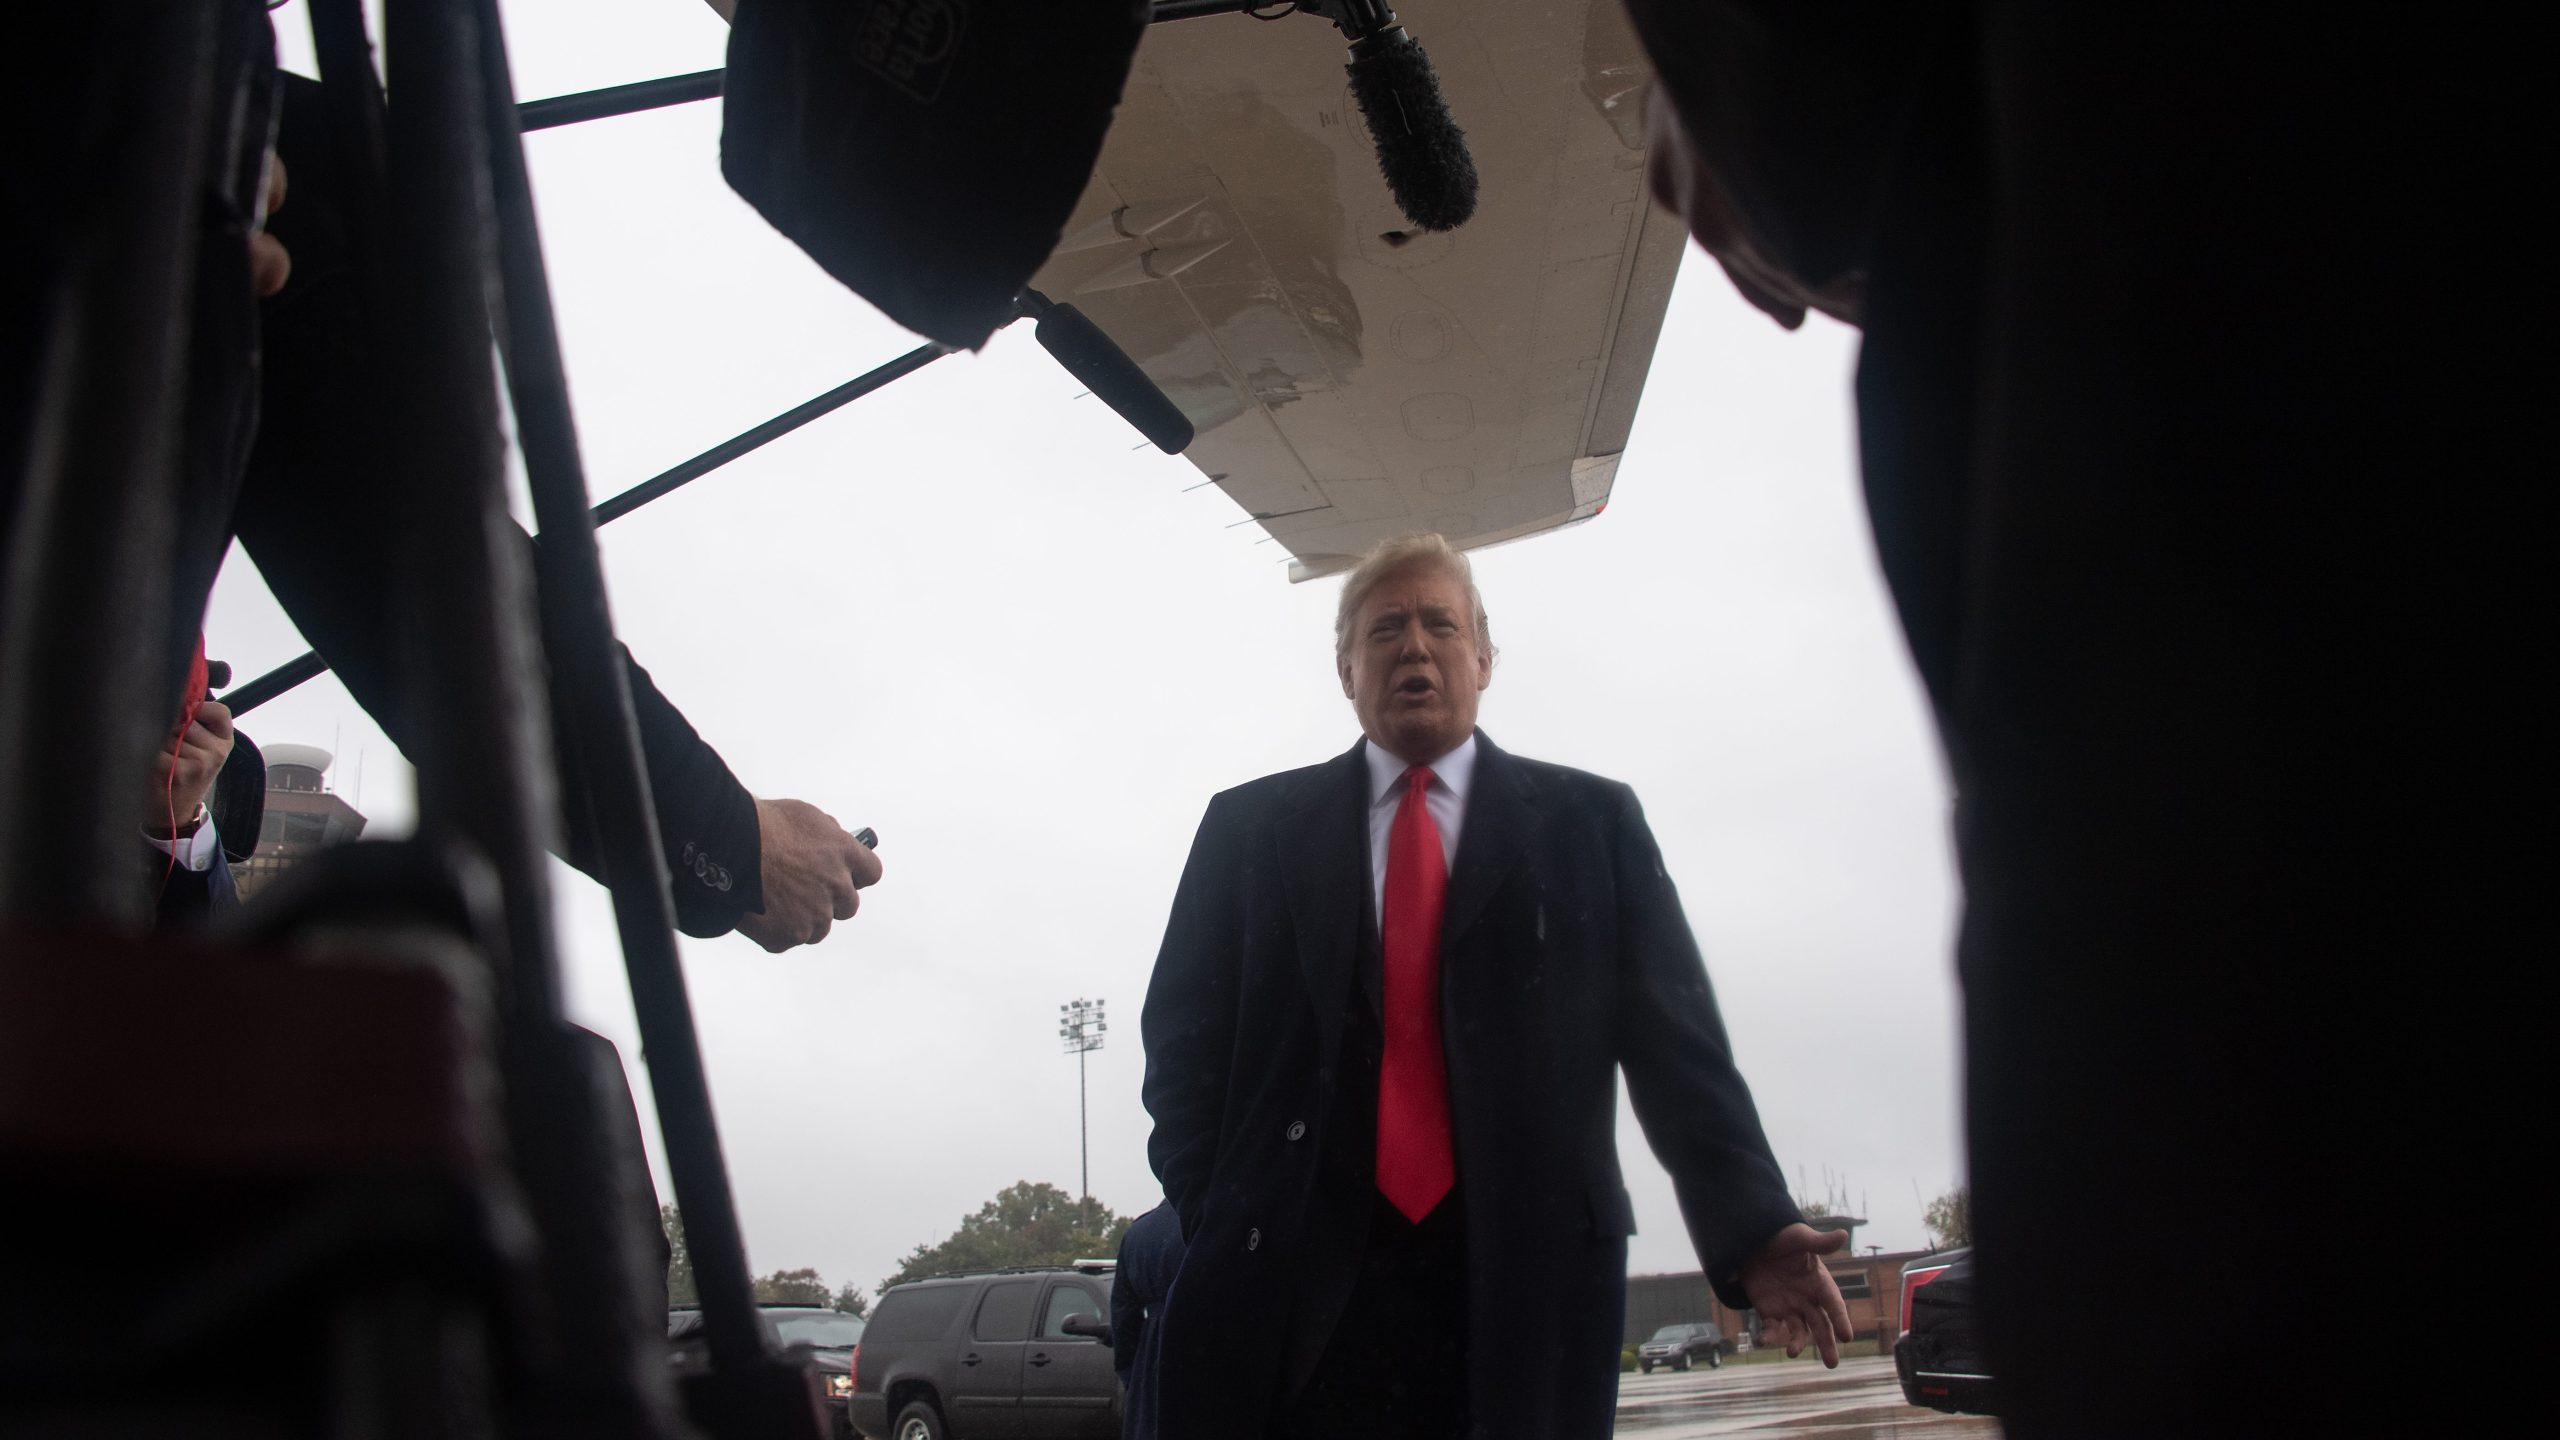 Donald Trump speaks to the press before boarding Air Force One at Andrews Air Force Base in Maryland on Oct. 27, 2018. (Credit: NICHOLAS KAMM/AFP/Getty Images)